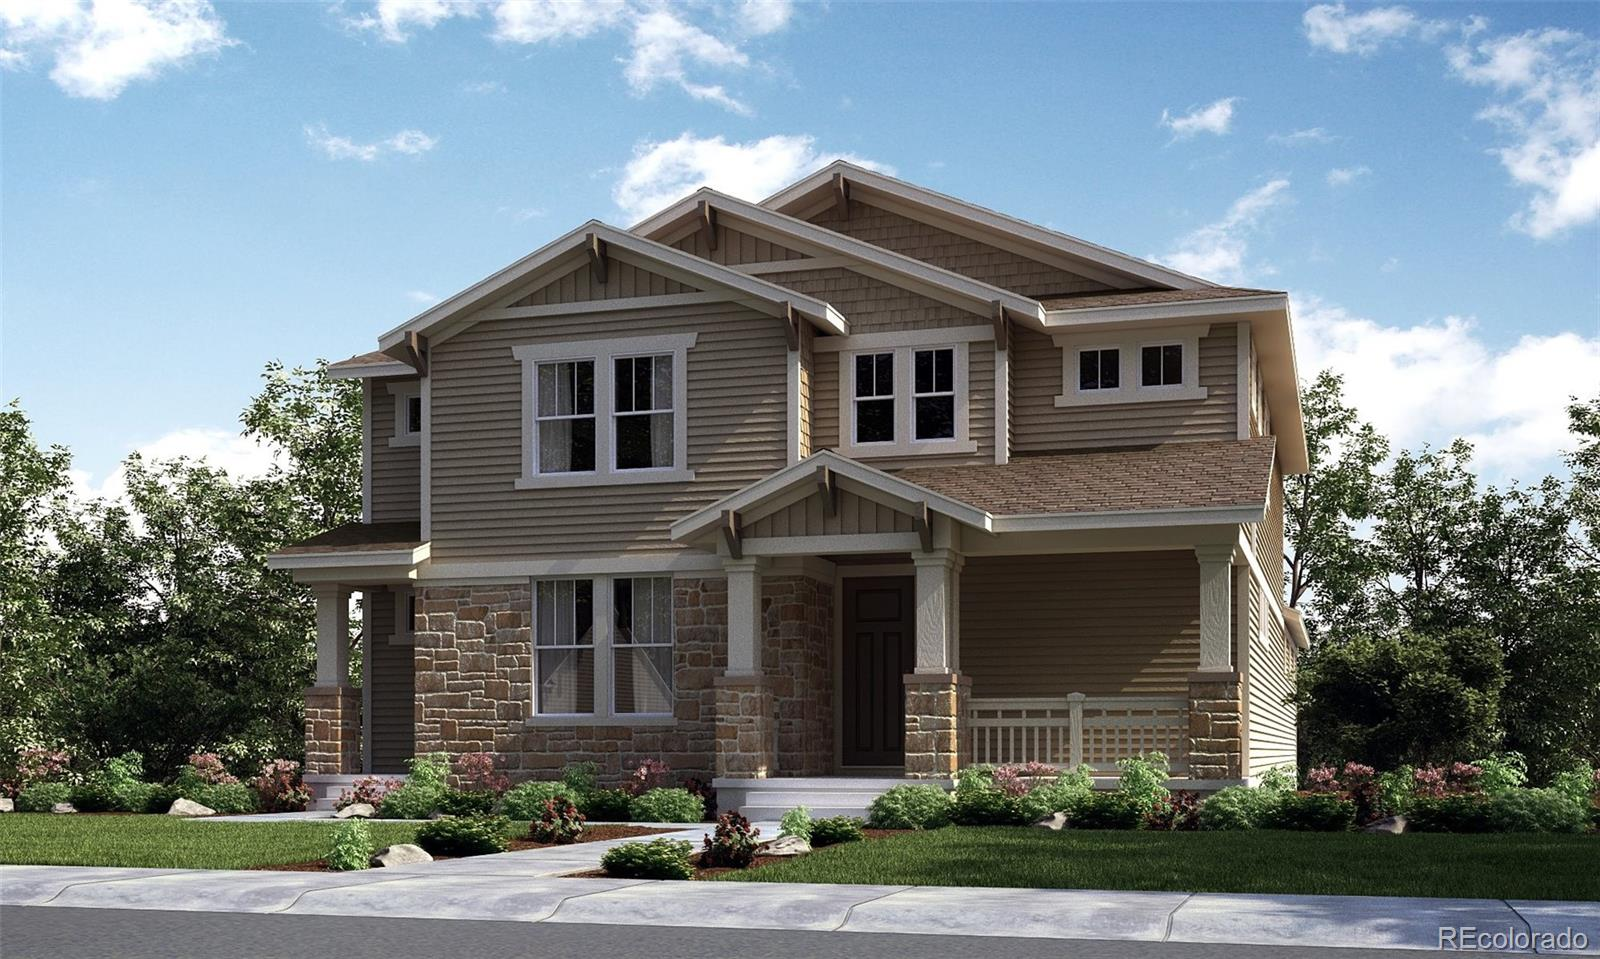 Available March 2022! Located on a southern facing lot in the North end of Central Park, this gorgeous Revelation 2-story features 4 beds (3 upper / 1 main NexGen), 3.5 baths (2 upper / 1 main / 1 NexGen bath), great room (main), kitchen (main), kitchenette (NexGen), formal dining room (main), living room (NexGen), unfinished basement and 3 car garage. Beautiful upgrades and finishes throughout. Central Park is a great Lennar community providing the best of Colorado living with all the latest technology. Lennar provides the latest in energy efficiency & state of the art technology with several fabulous floorplans to choose from. Energy efficiency, and technology/connectivity seamlessly blended with luxury to make your new house a home. What some builders consider high-end upgrades, Lennar makes a standard inclusion. You will not be disappointed. This community offers homes for every lifestyle. Close to dining, shopping, entertainment and other amenities. Easy commute to DIA, E-470, Downtown Denver & beyond. Numerous parks and miles of trails to explore - plenty to see and do. Still time to make design selections.